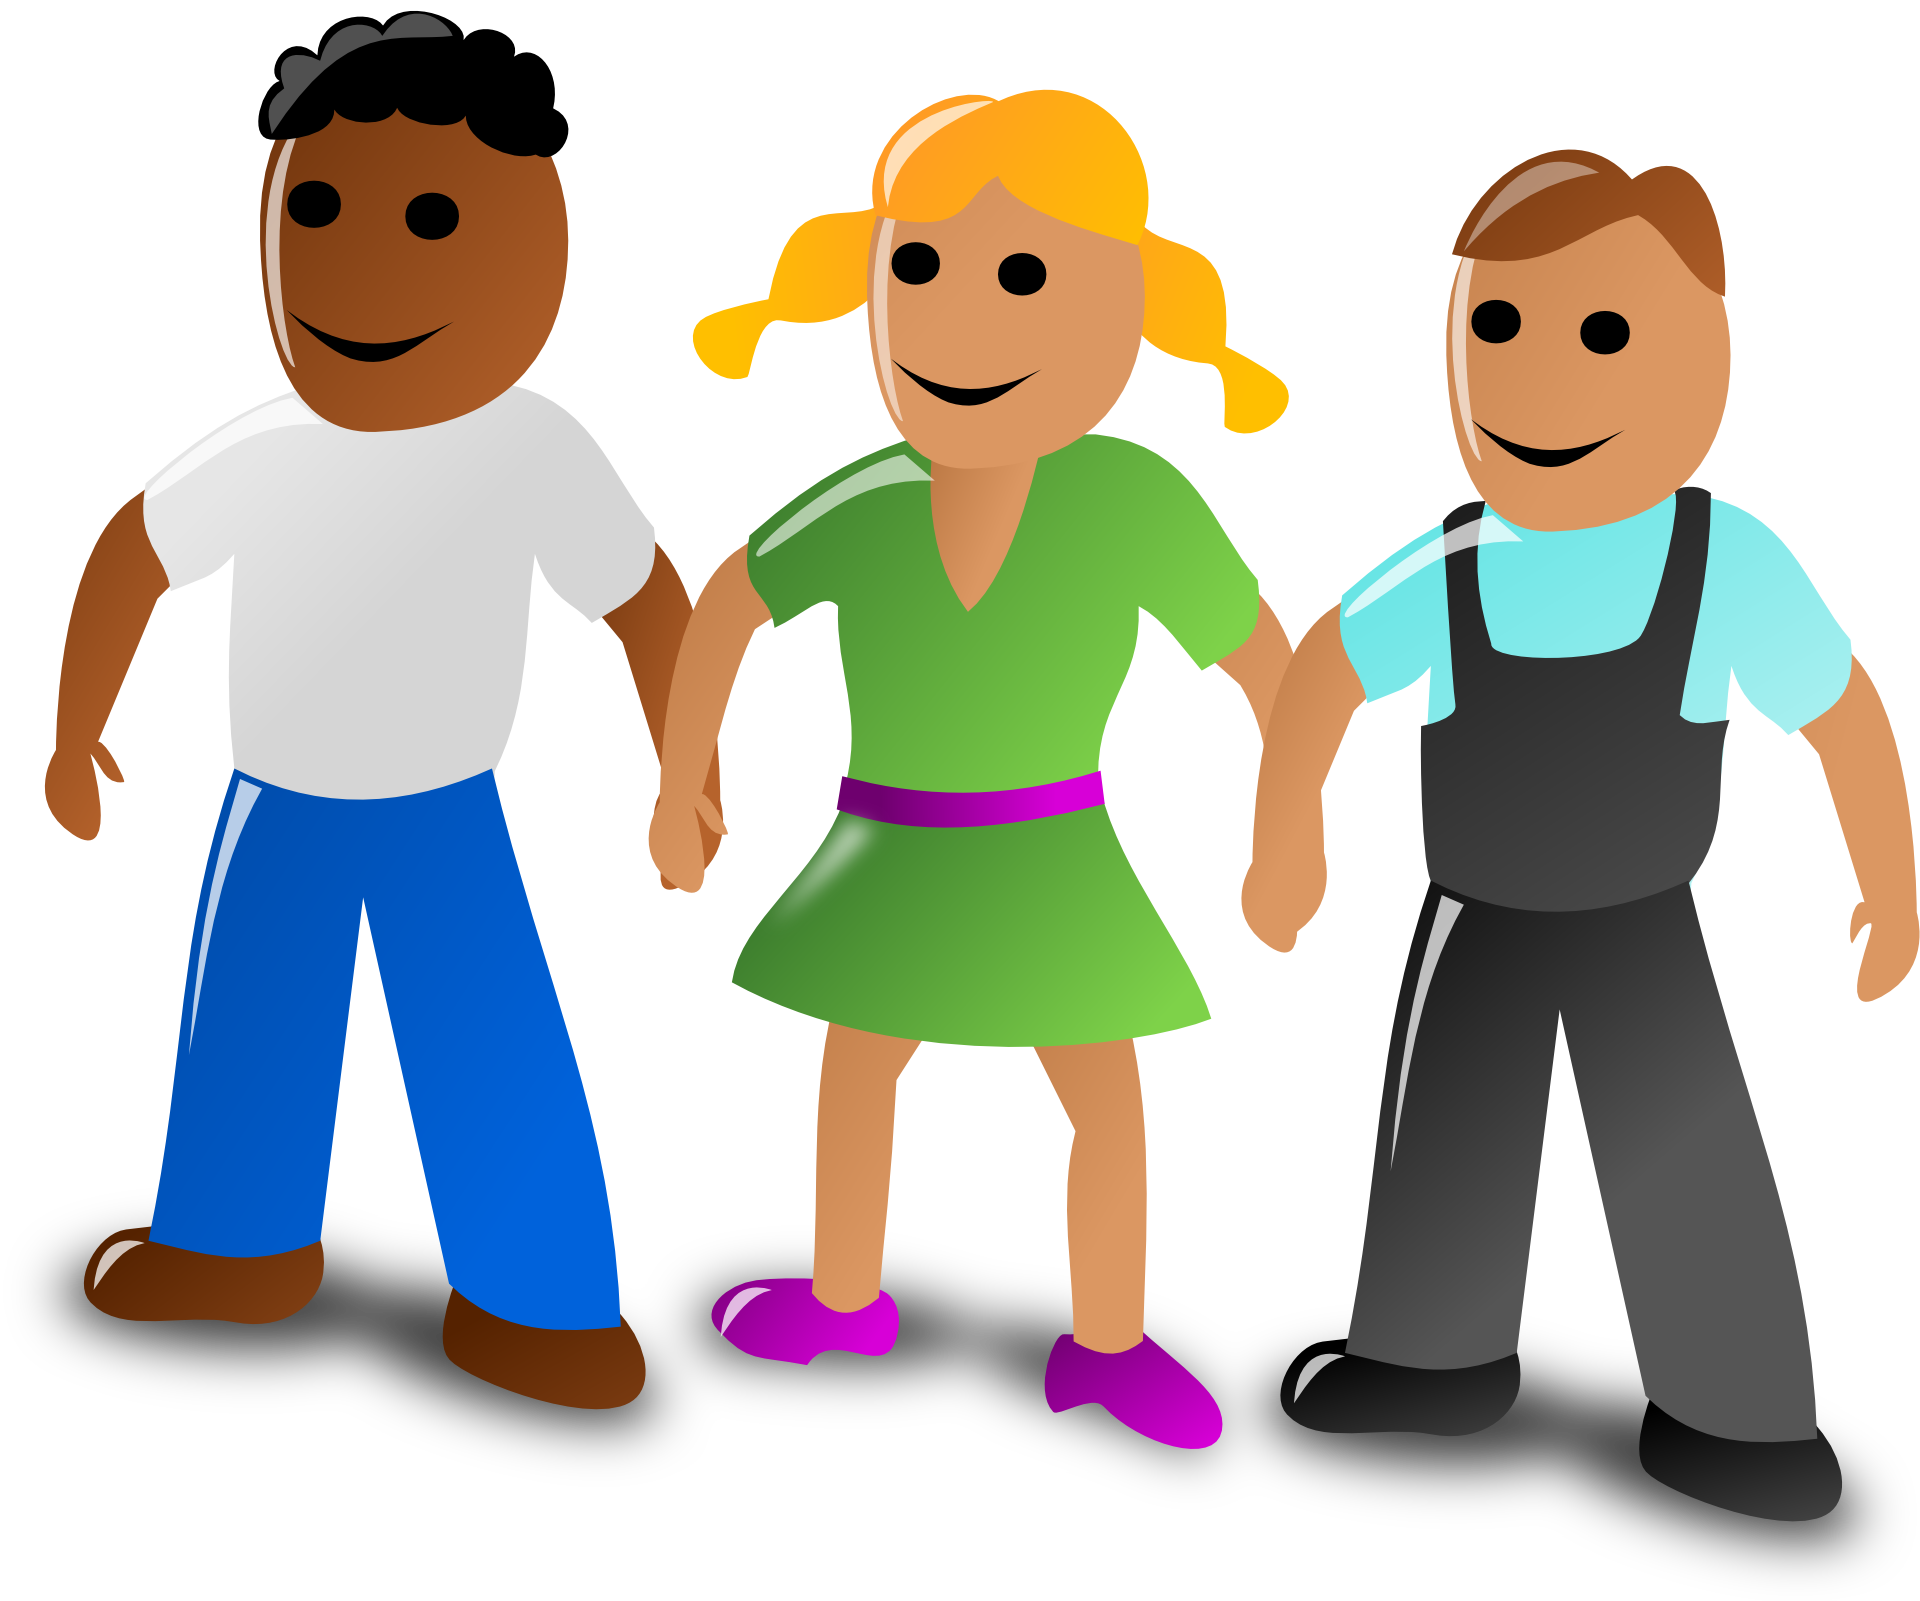 Working clipart group communication. Drawing holding hands clip